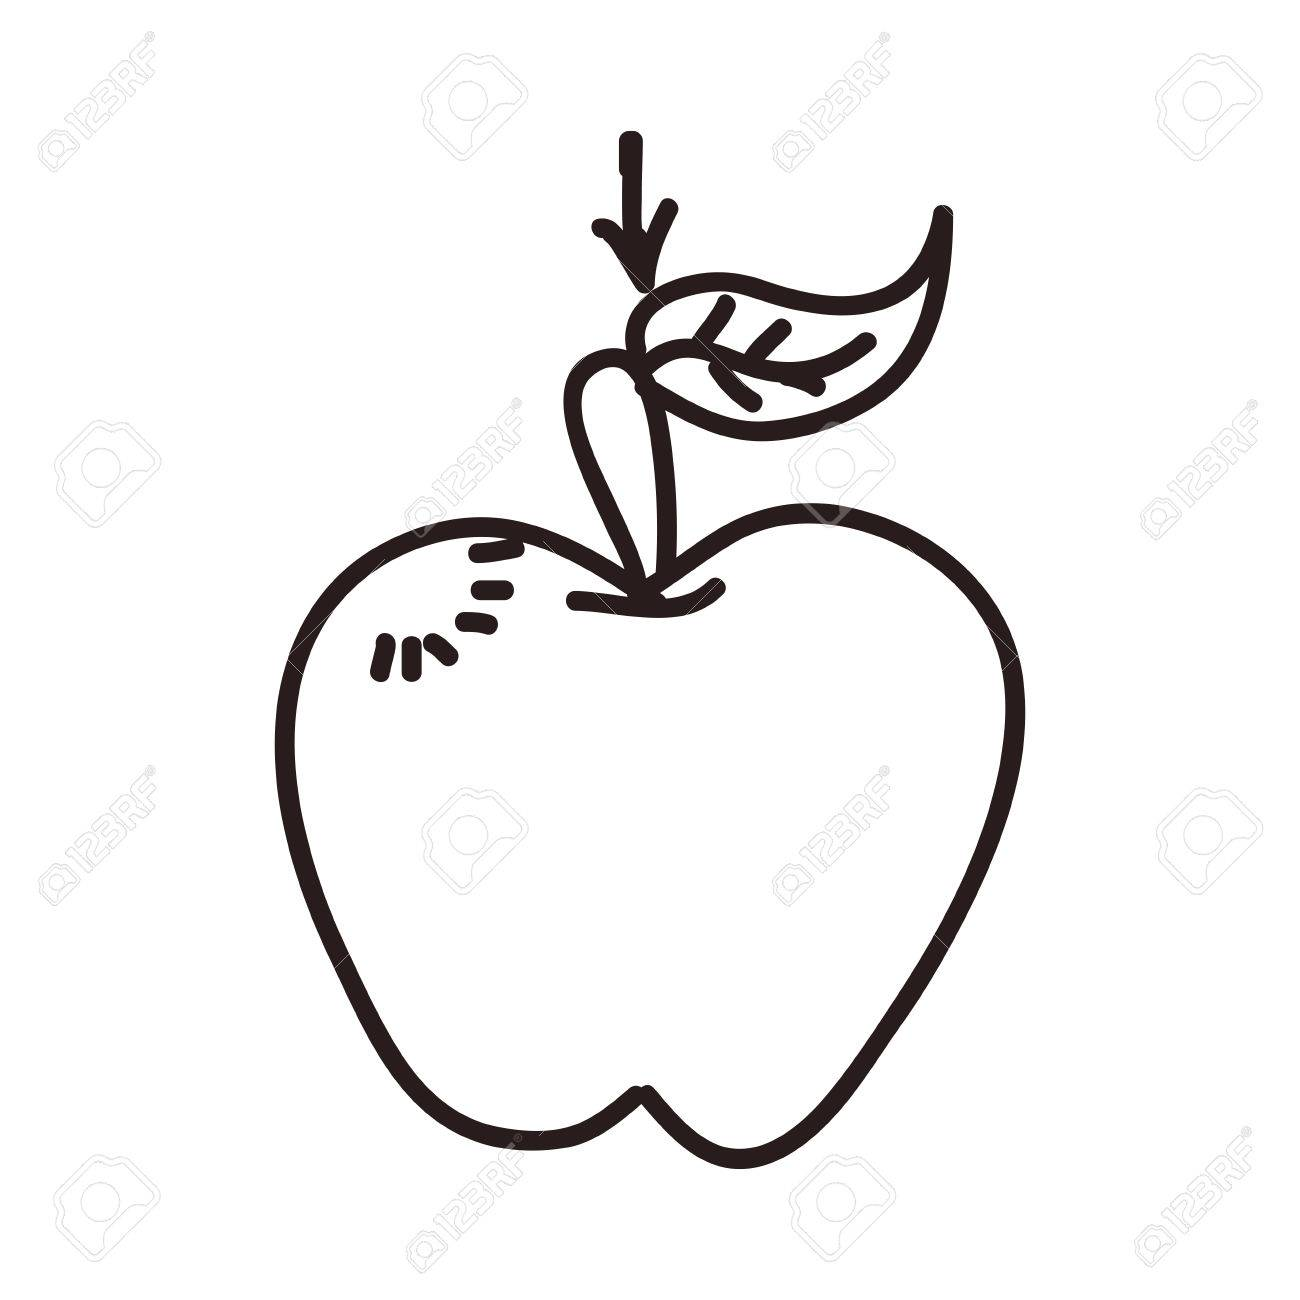 1300x1300 Apple Cartoon Draw Vector Icon Illustration Graphic Design Royalty